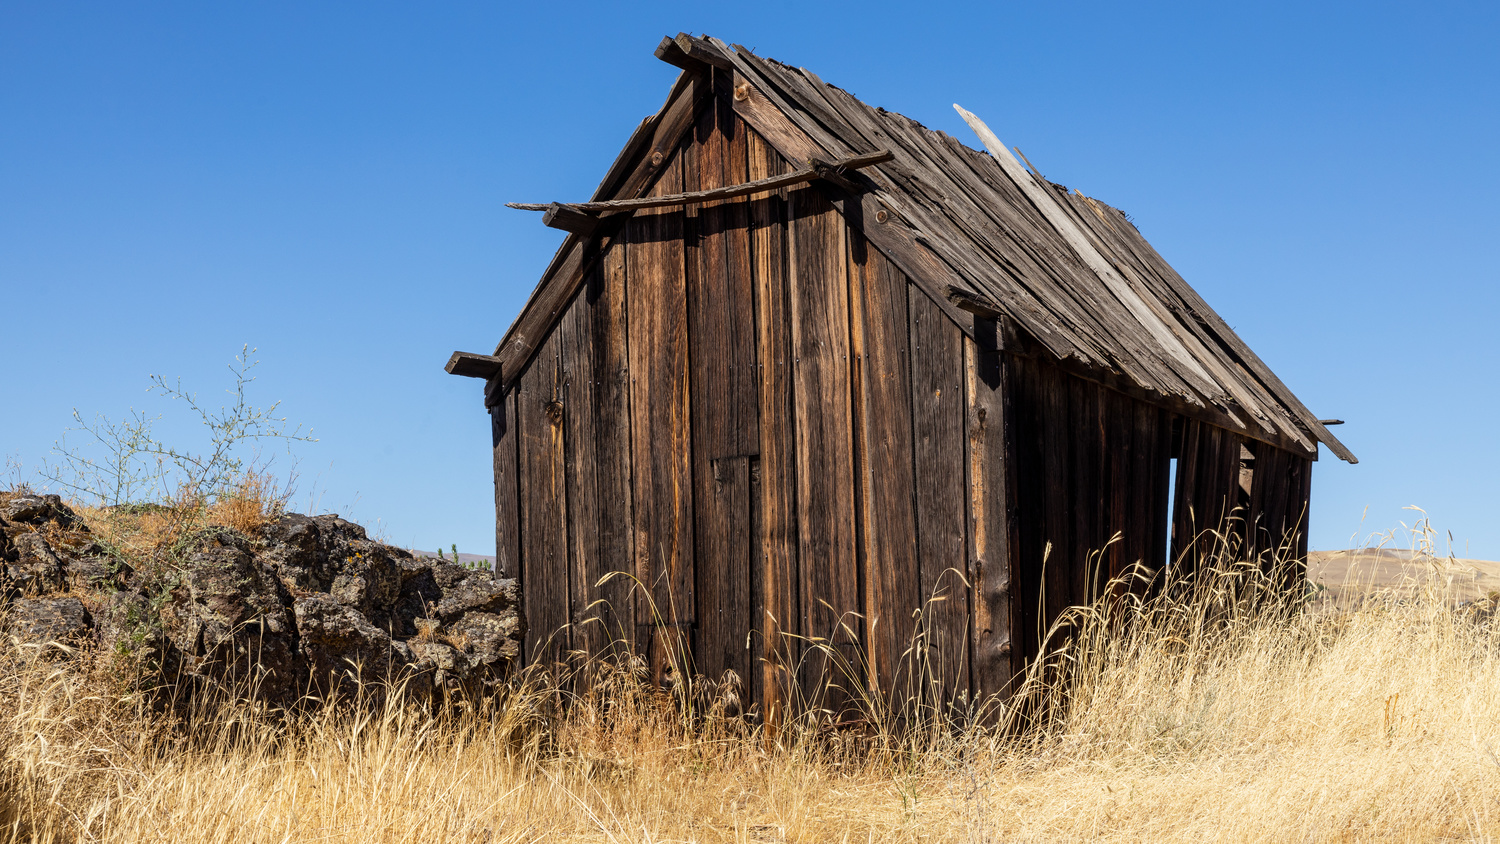 Little Shed on the Prairie by dean wilson